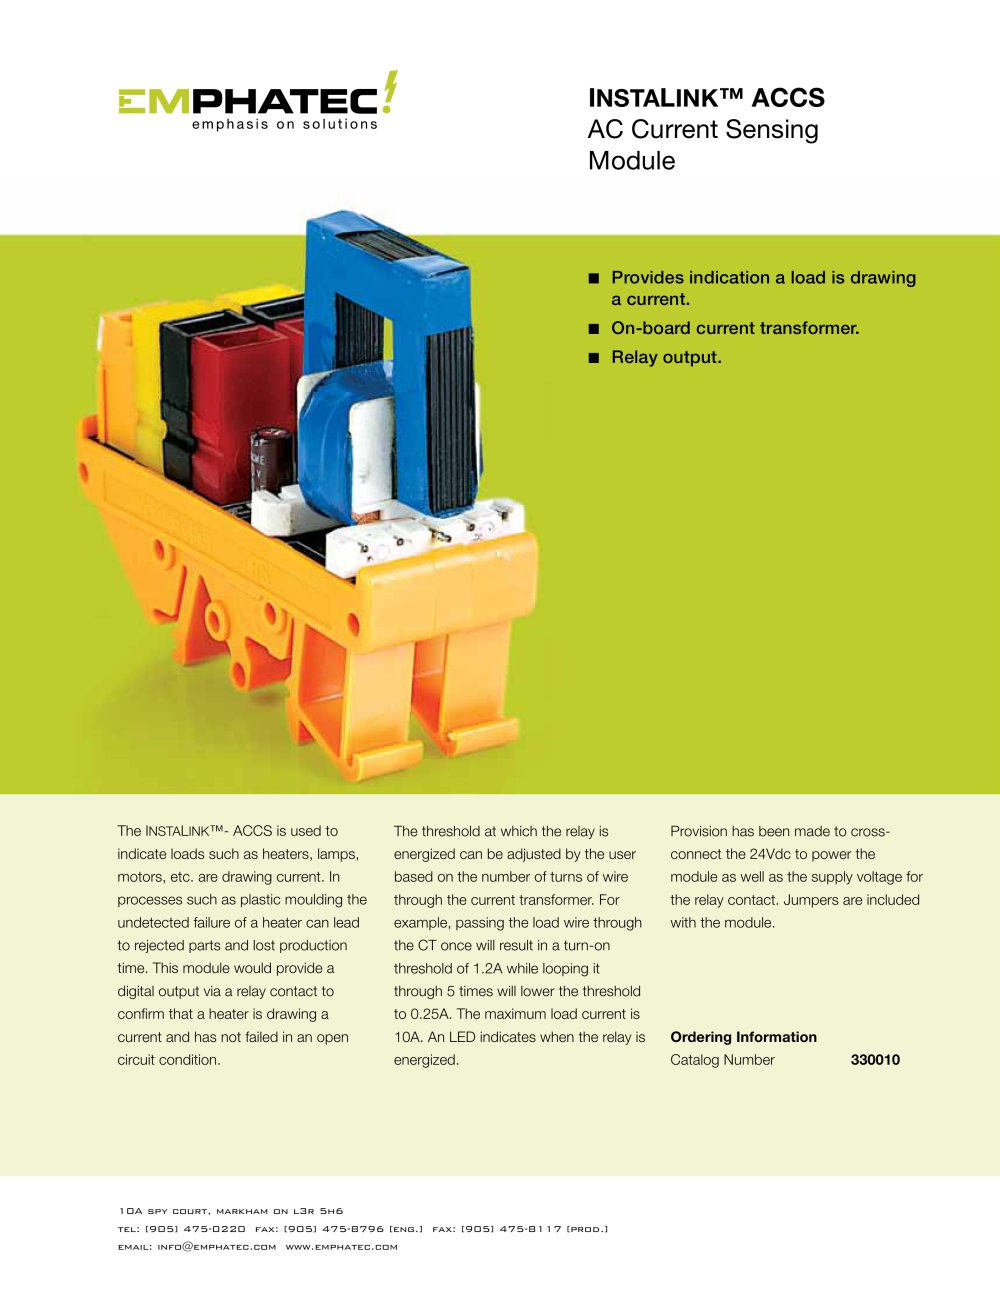 Accs Current Sensing Module Emphatec Pdf Catalogue Technical Relay Circuit 1 2 Pages